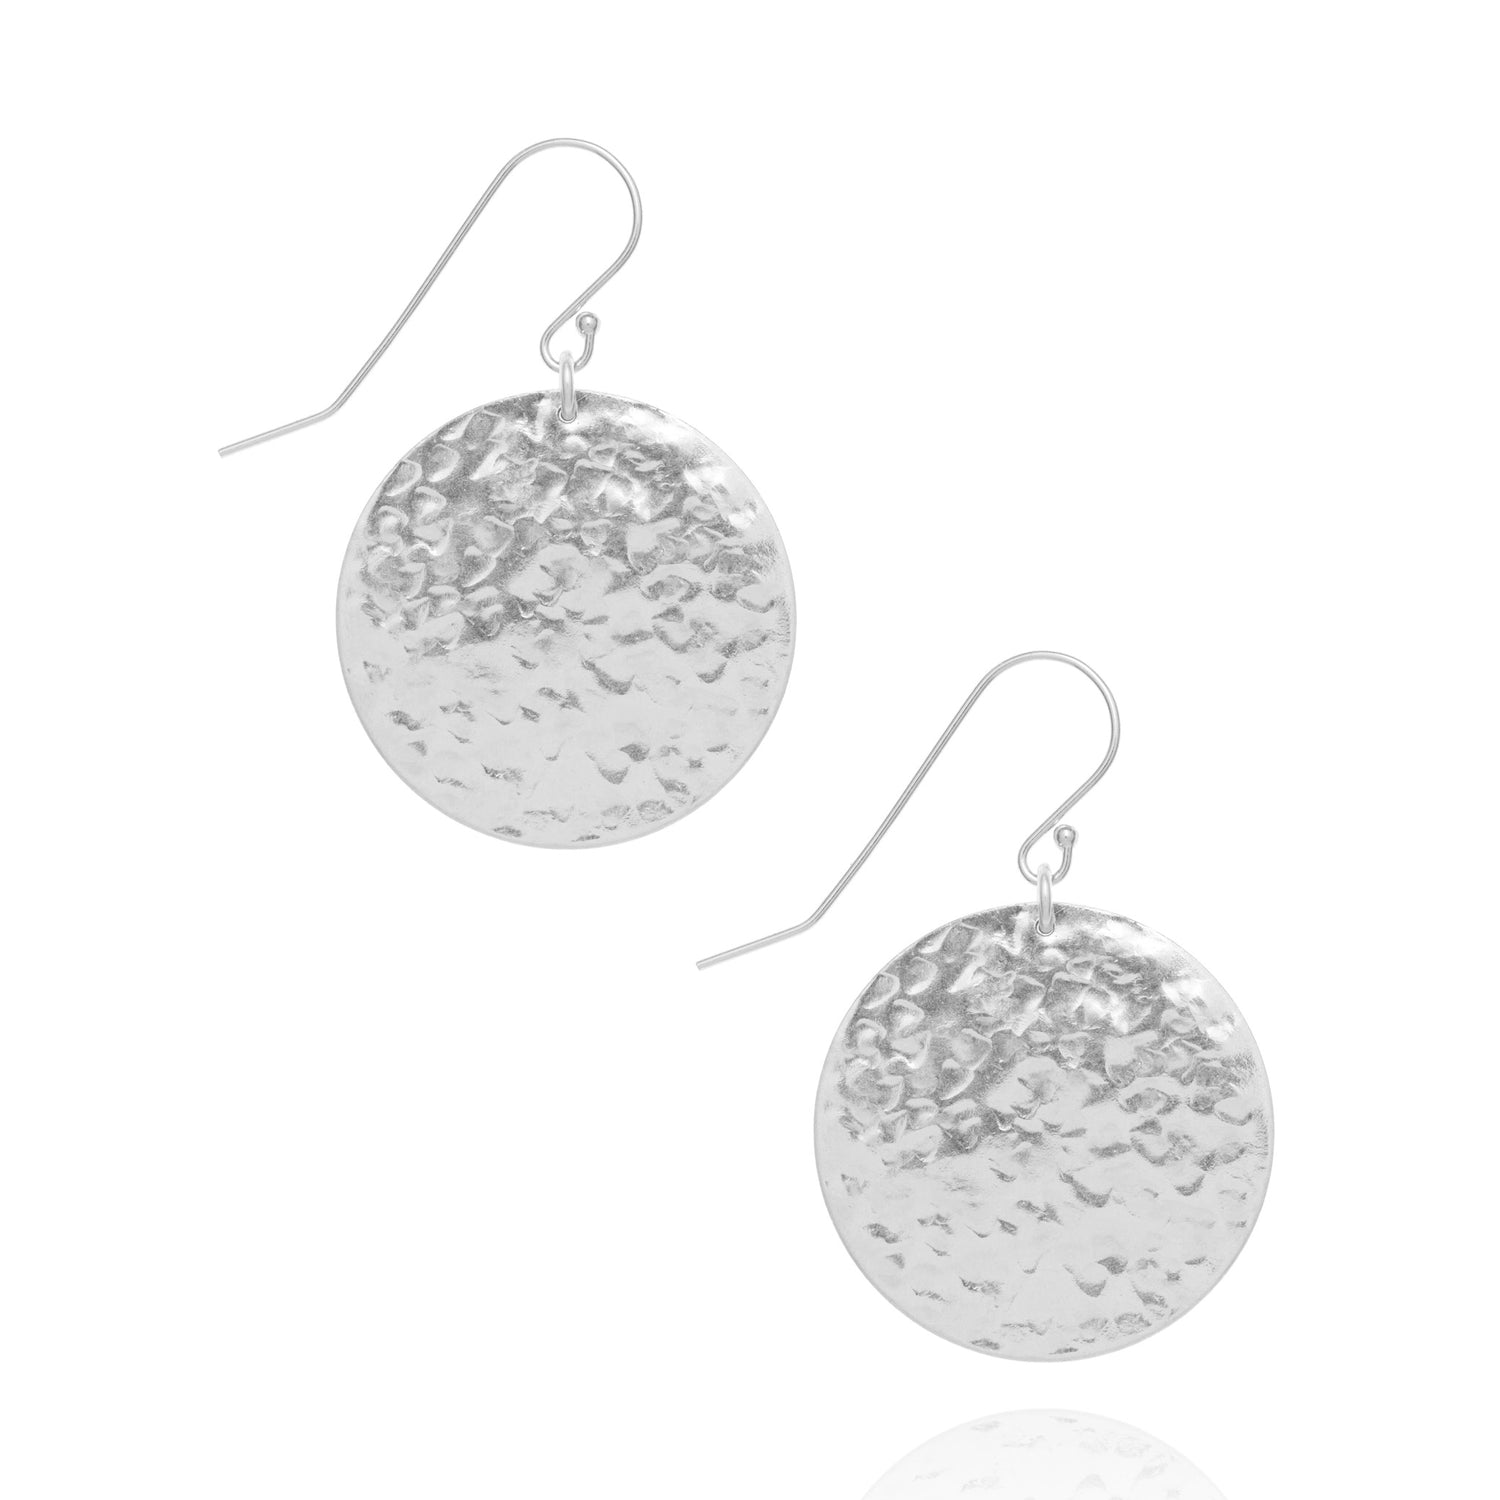 Large radiance coin earrings, silver